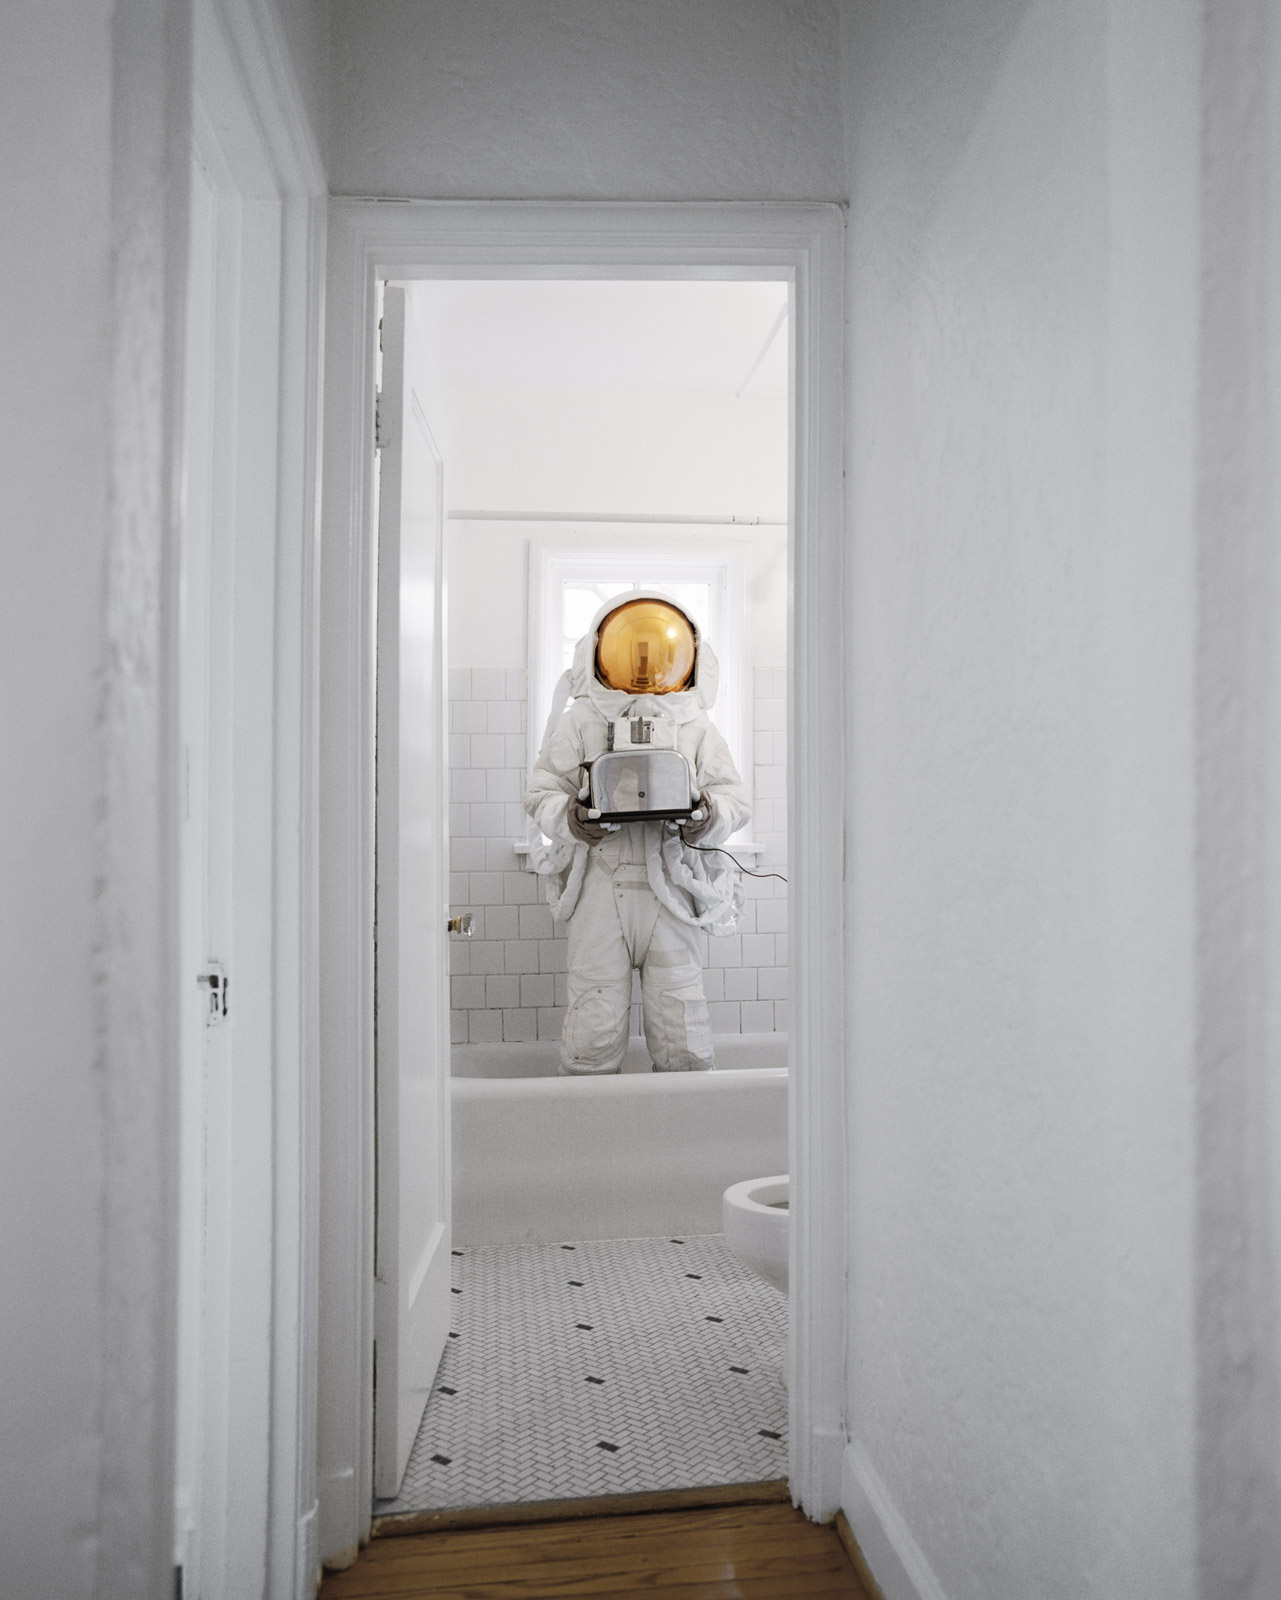 Photo : Neil DaCosta - Astronaut Suicide